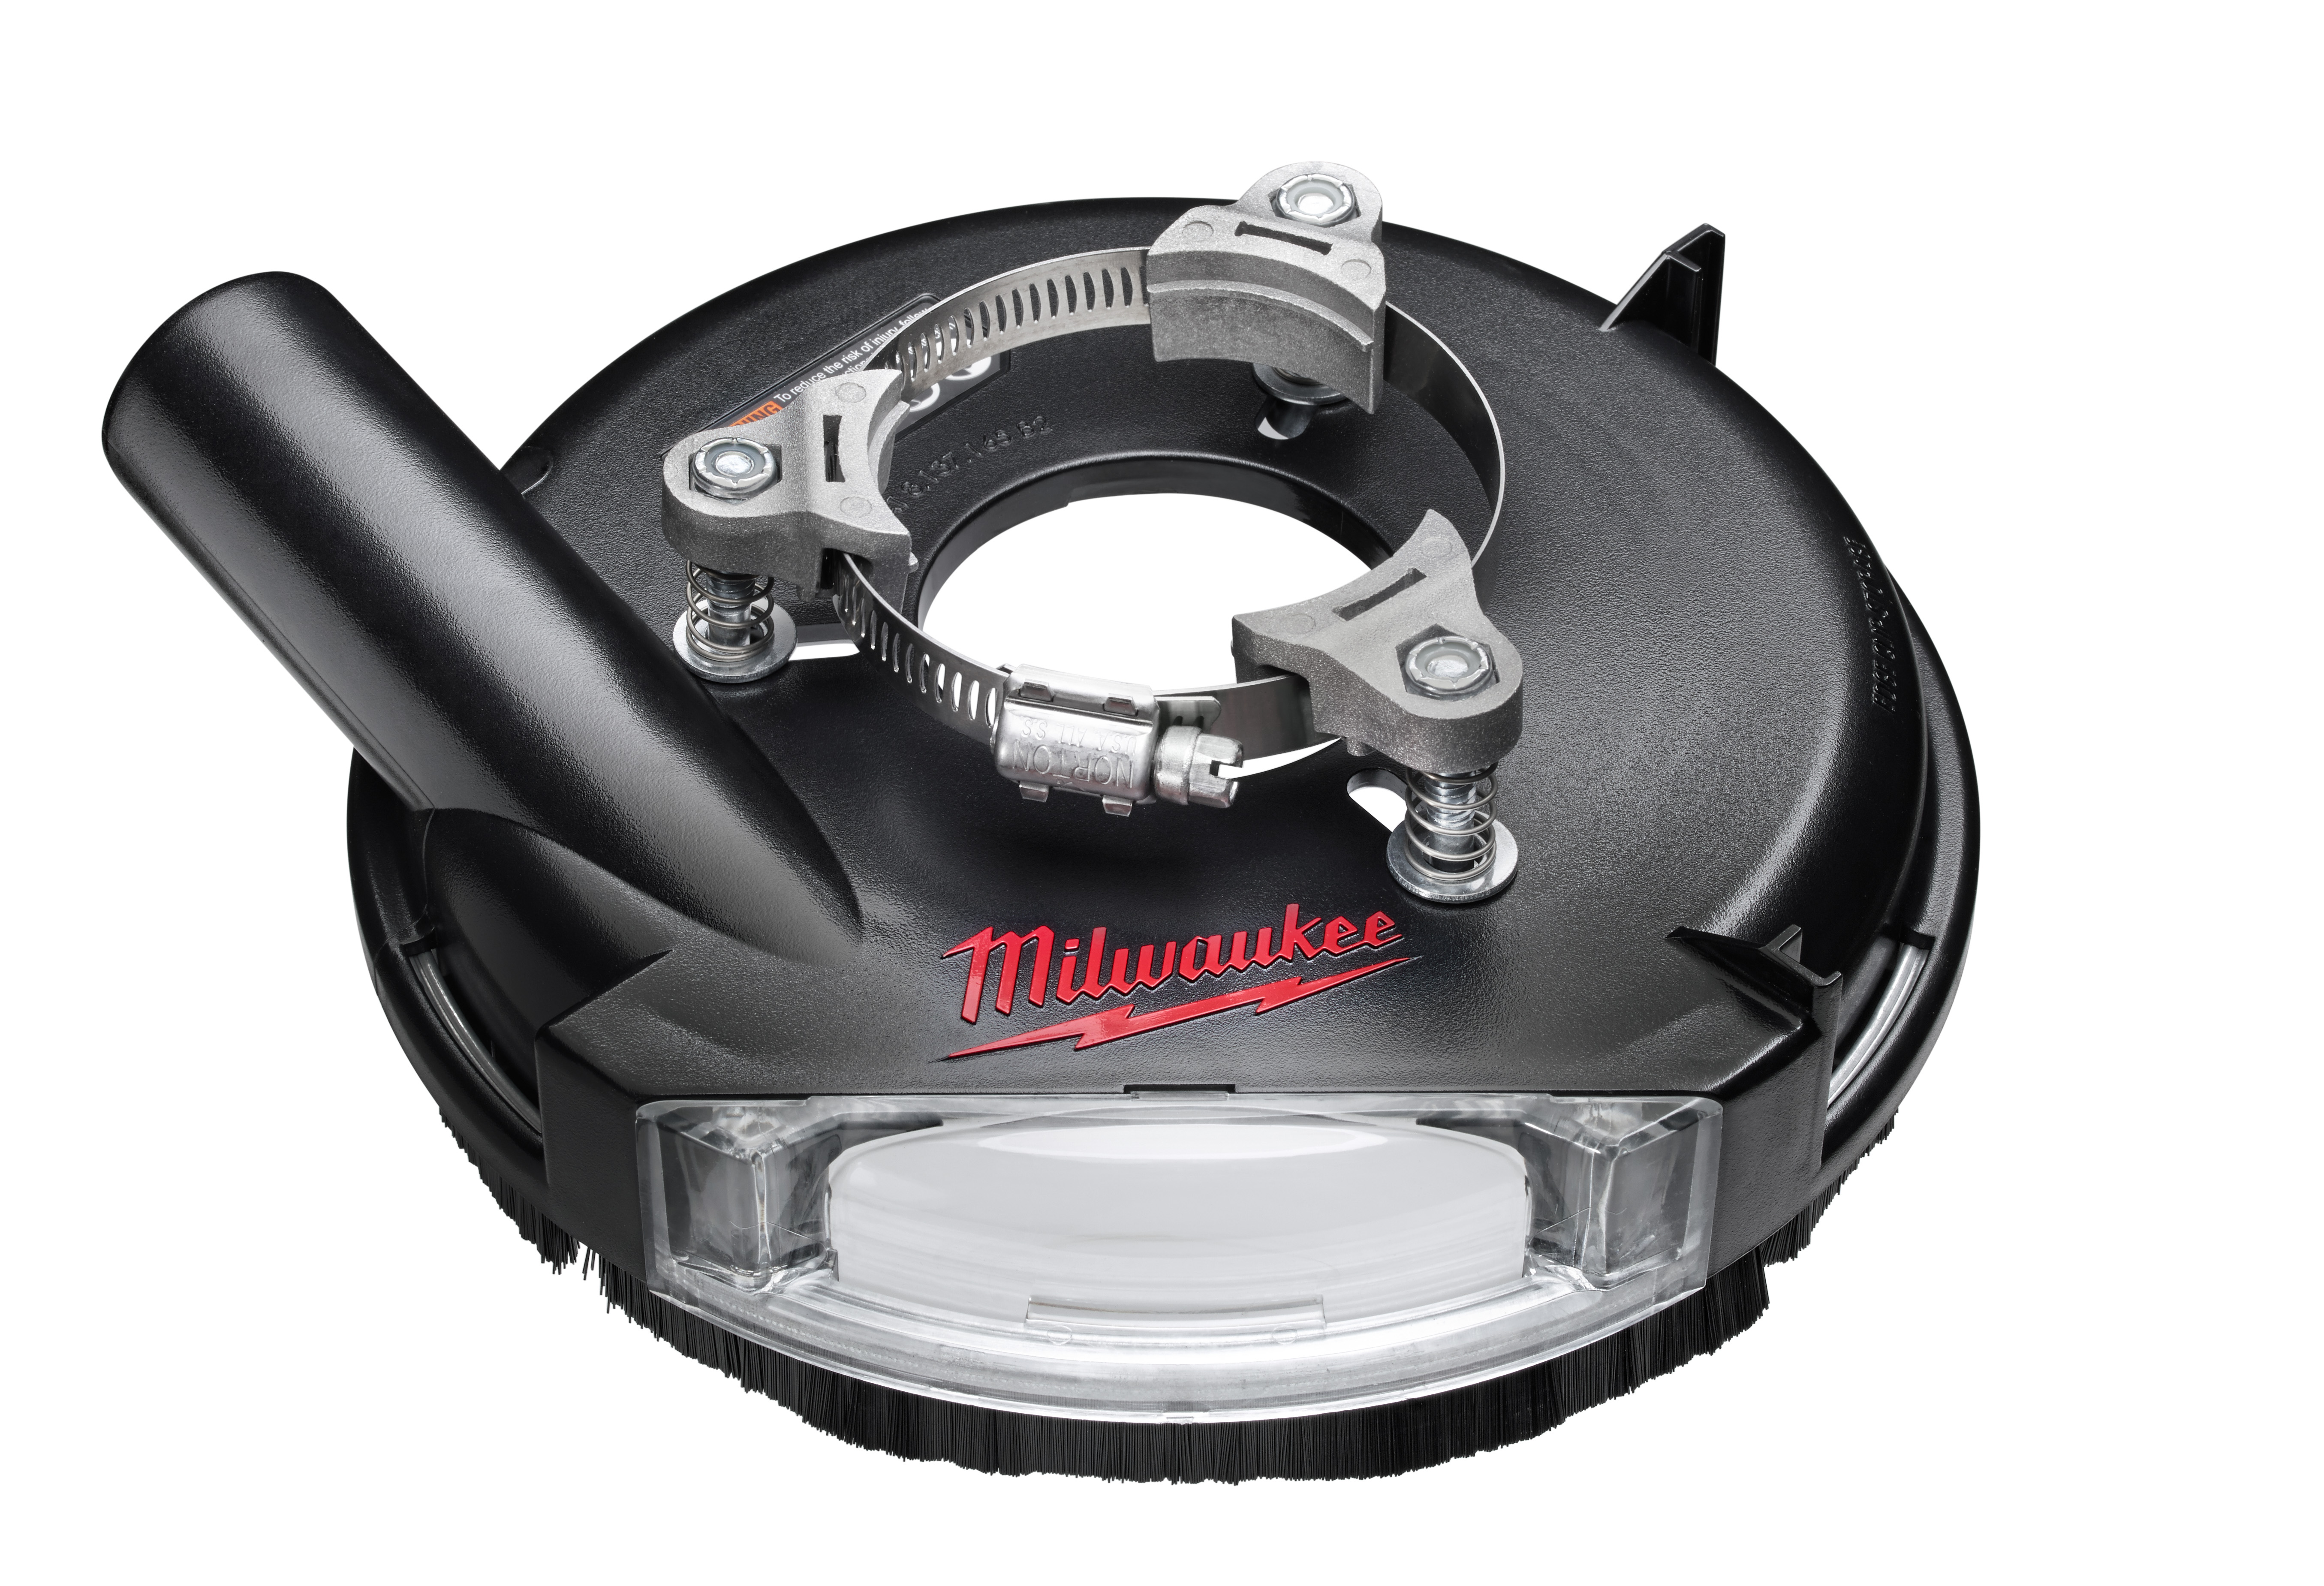 Milwaukee® 49-40-6105 Universal Surface Dust Shroud, For Use With Universal Grinder, 7/16 in H Collar, 17/64 in H Min Insert, 2-1/8 to 3 in Fits Collar Dia